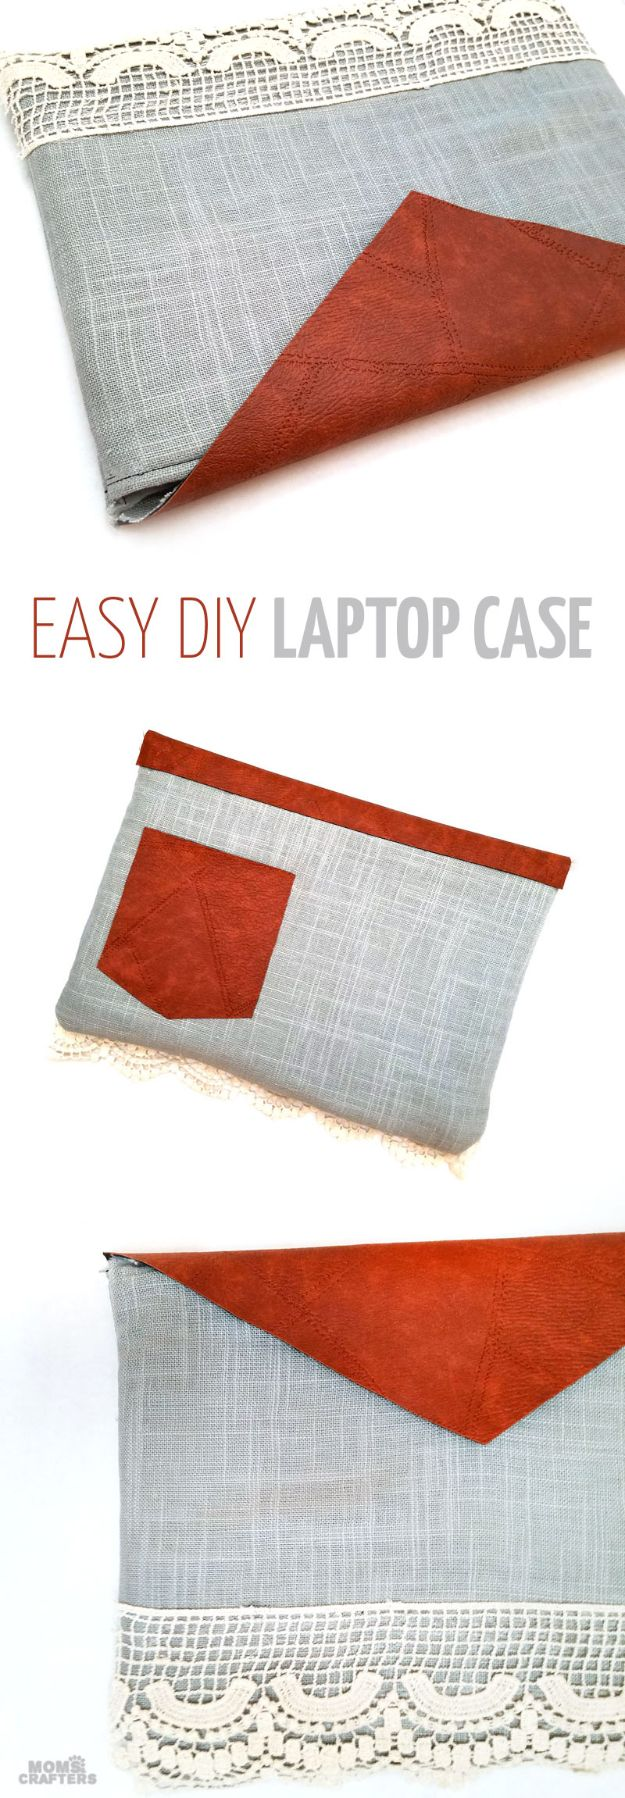 DIY Laptop Bags - Easy DIY Laptop Case - Easy Bag Projects to Make For Your Computer - Cool and Cheap Homemade Messnger Bags, Cases for Laptops - Shoulder Bag and Briefcase, Backpack